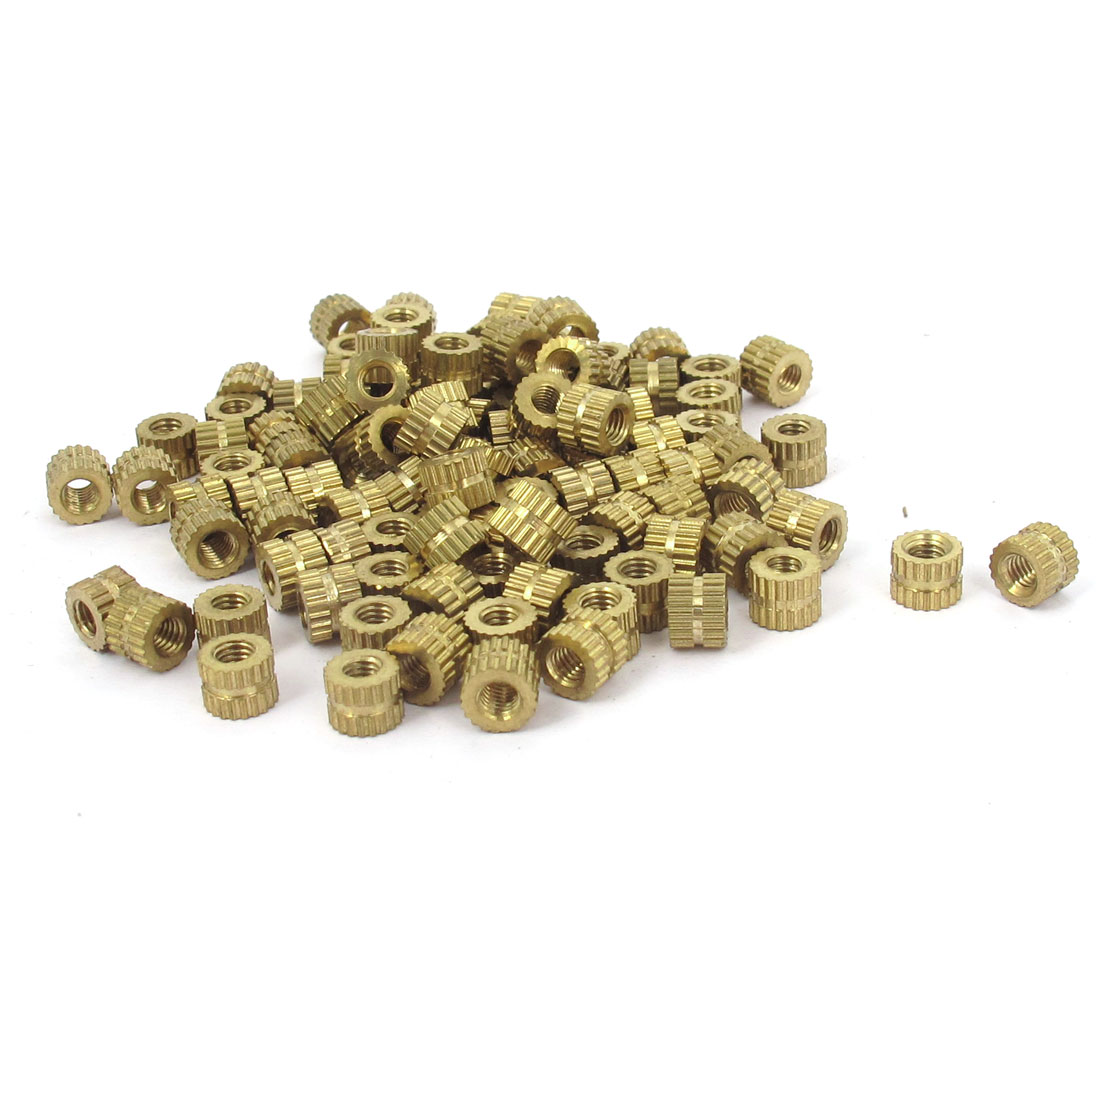 M3x4mm Threaded Round Metal Knurl Thread Insert Nuts Brass Tone 100Pcs